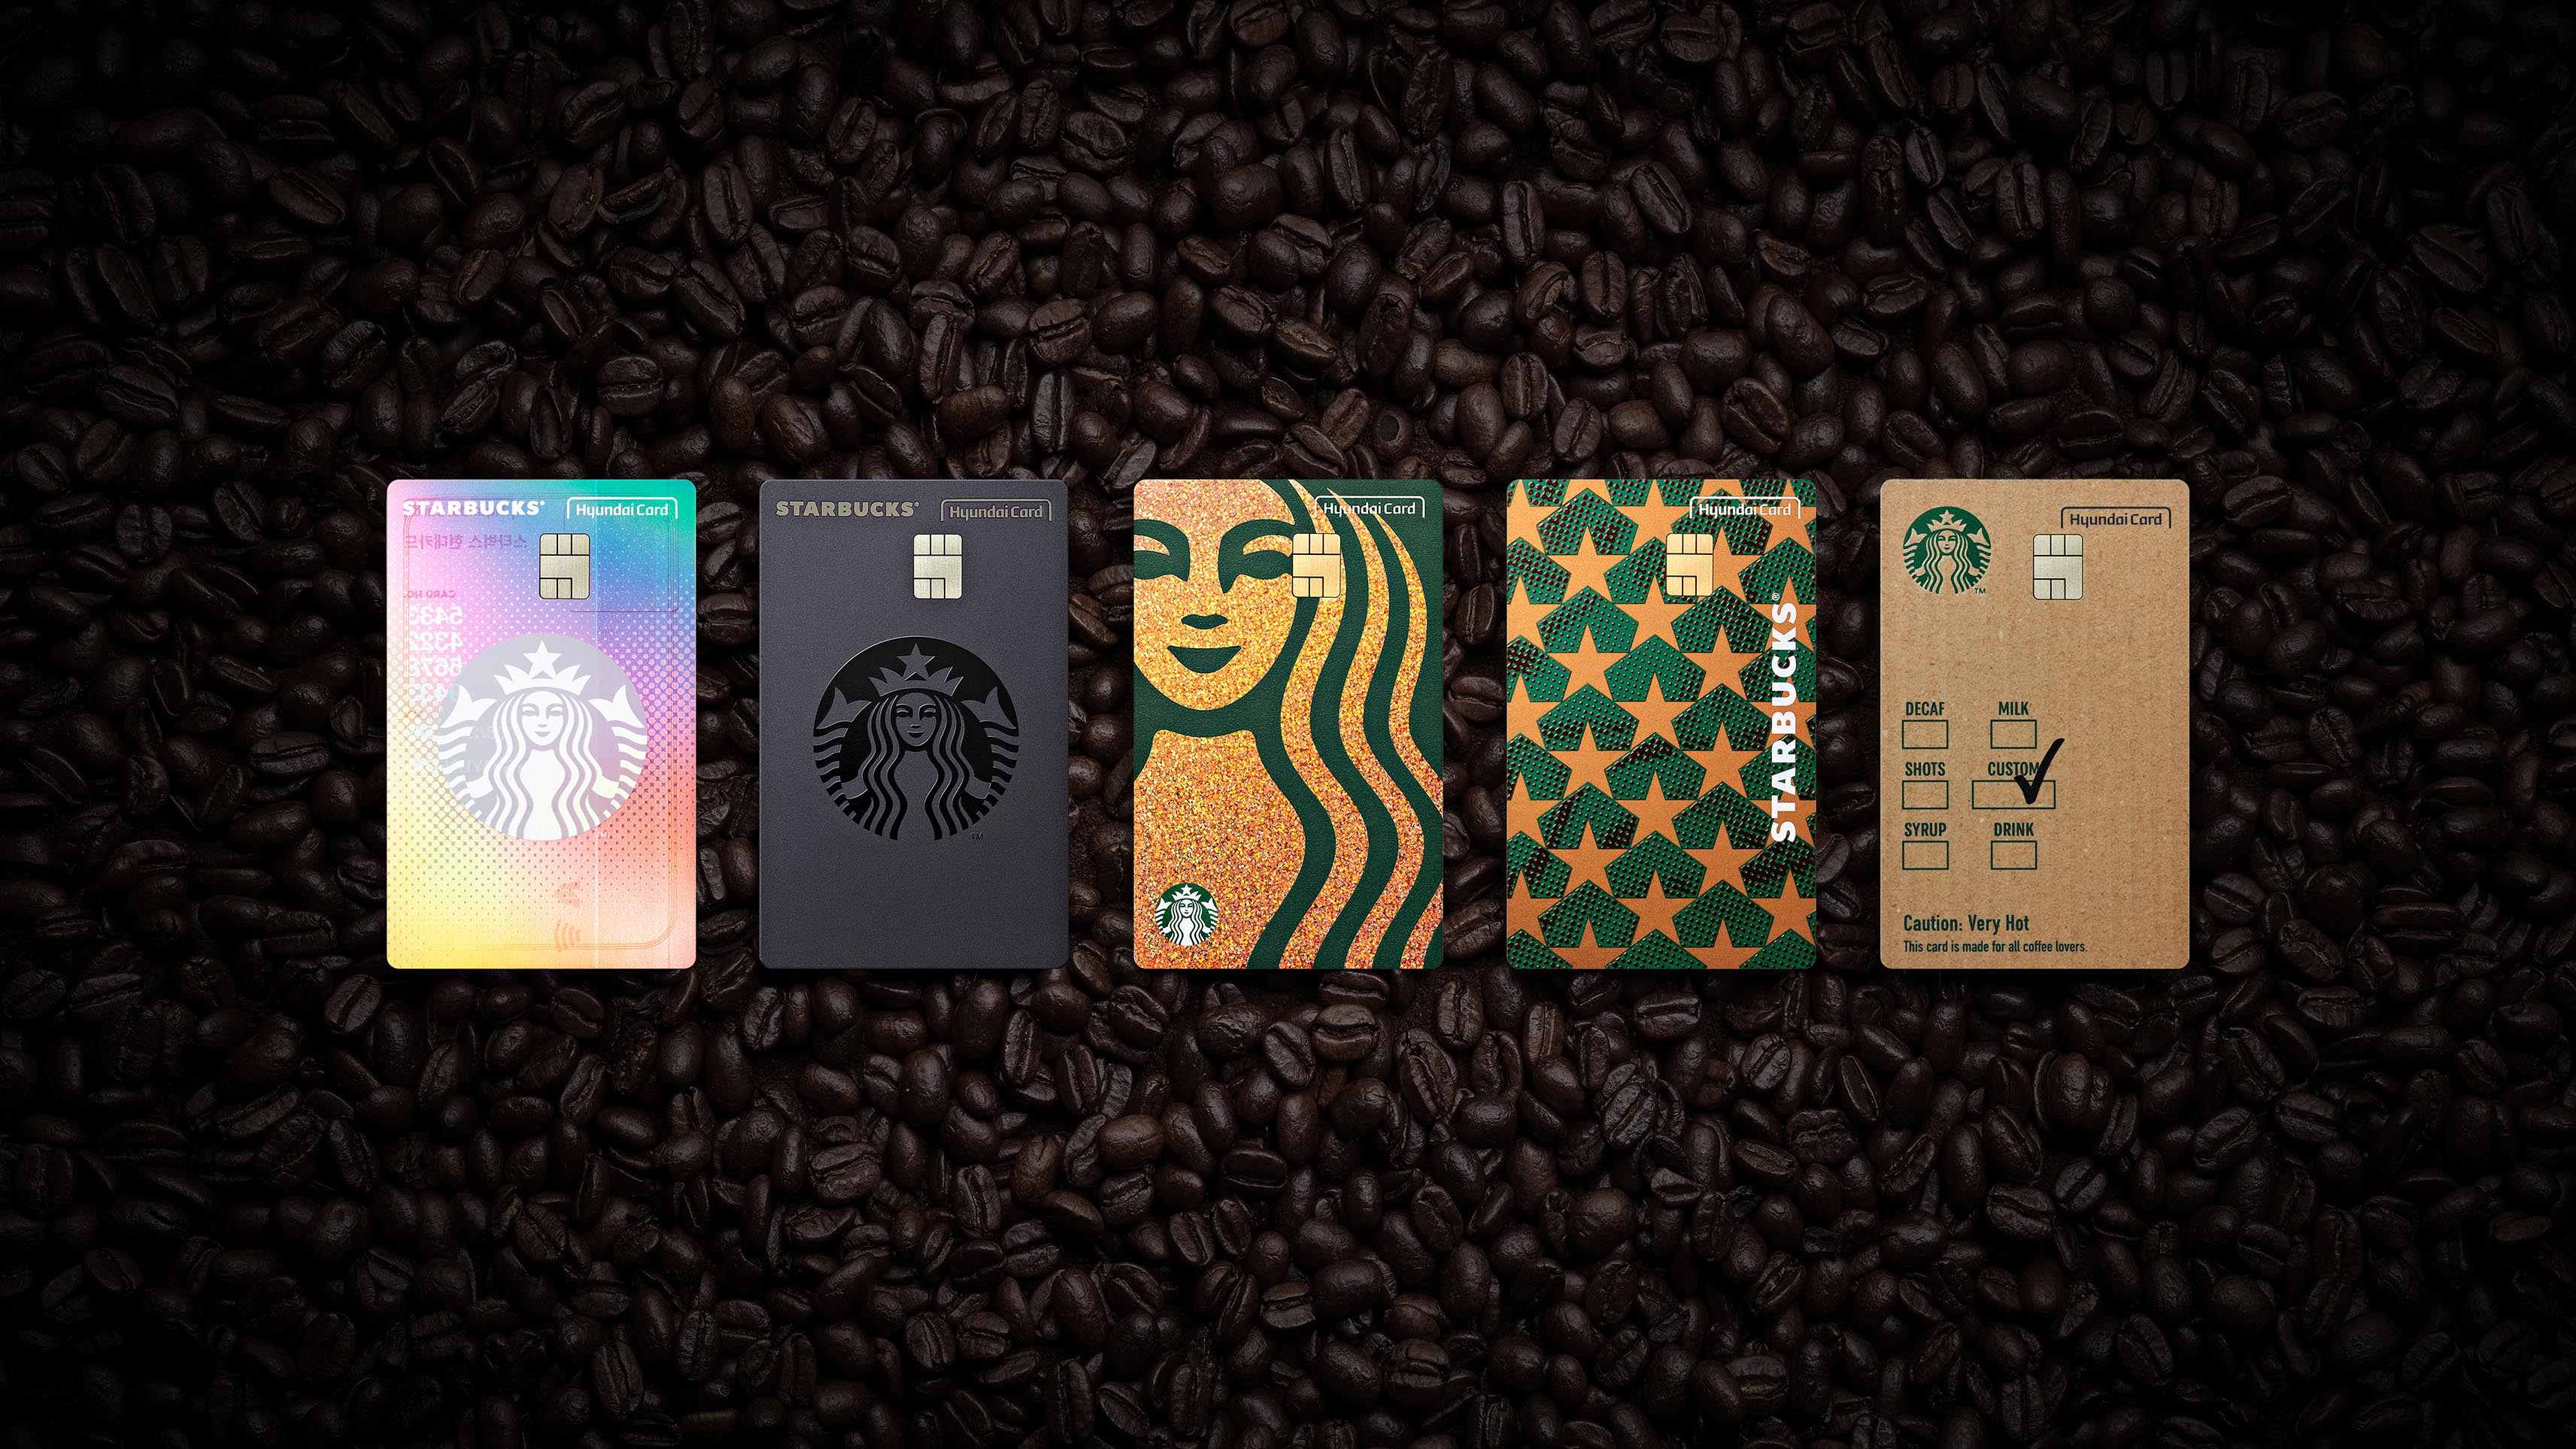 Starbucks Hyundai Card comes with star-studded benefits